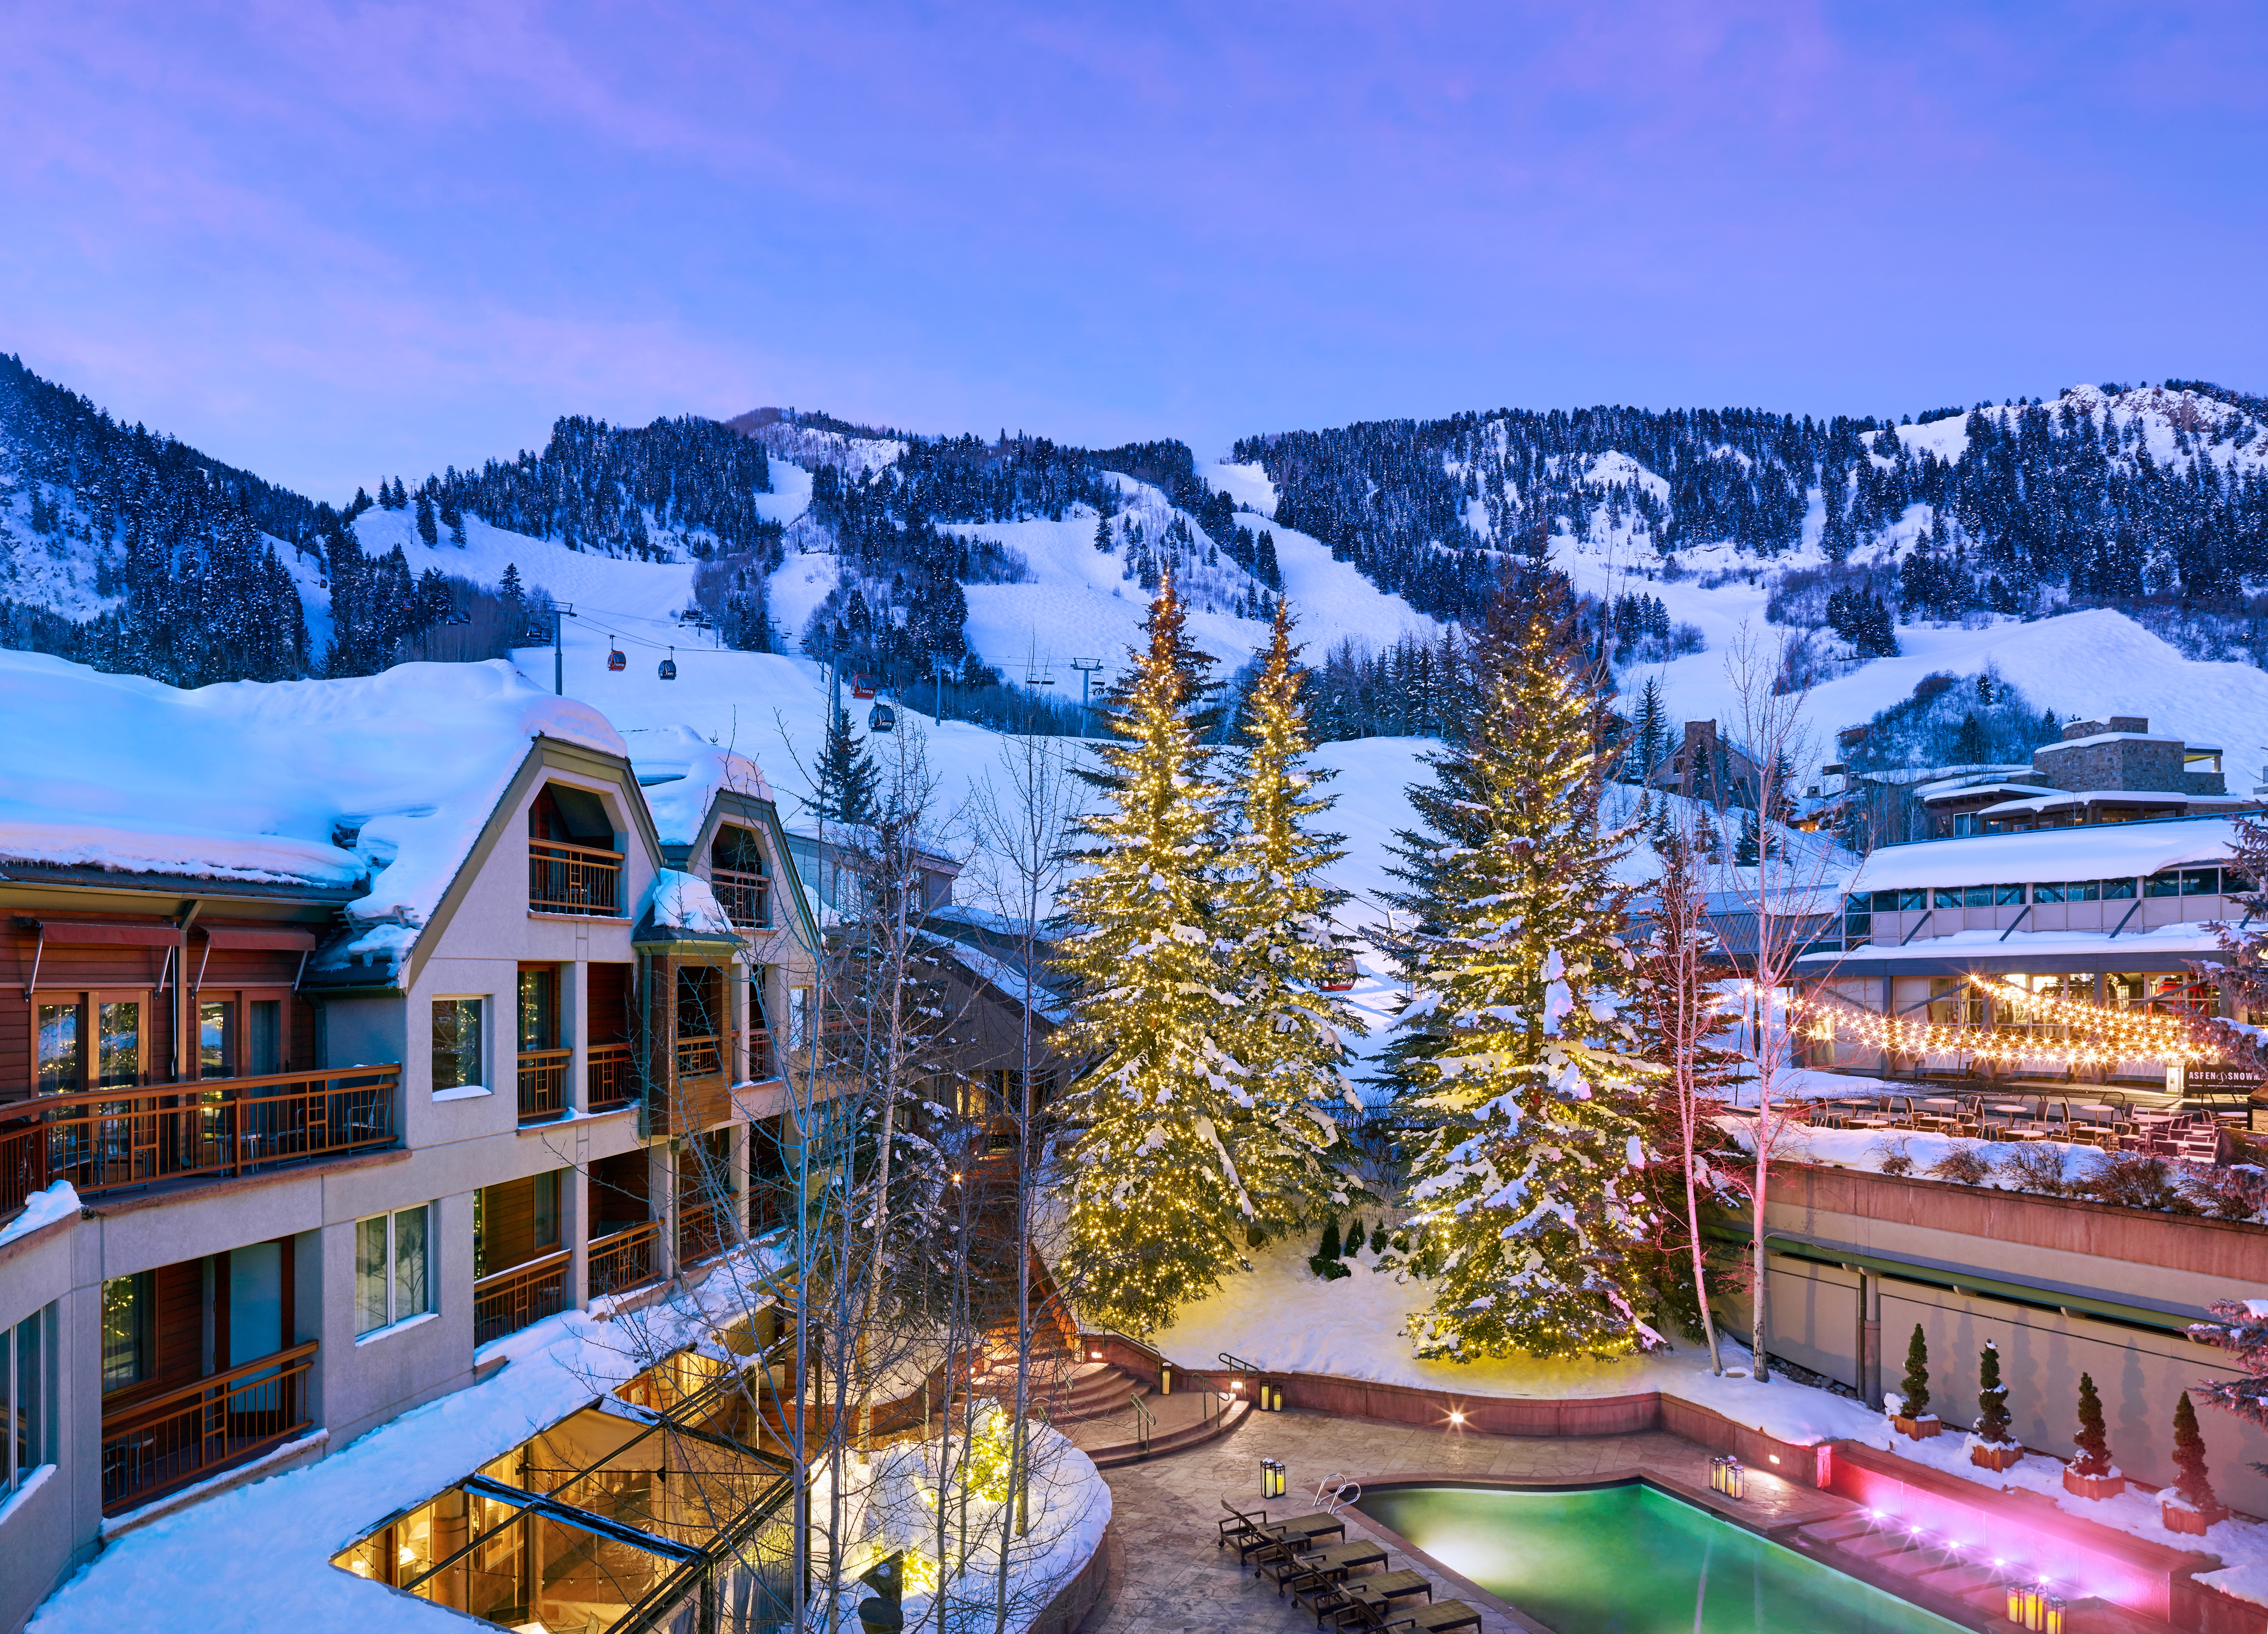 10 best ski towns to visit this winter